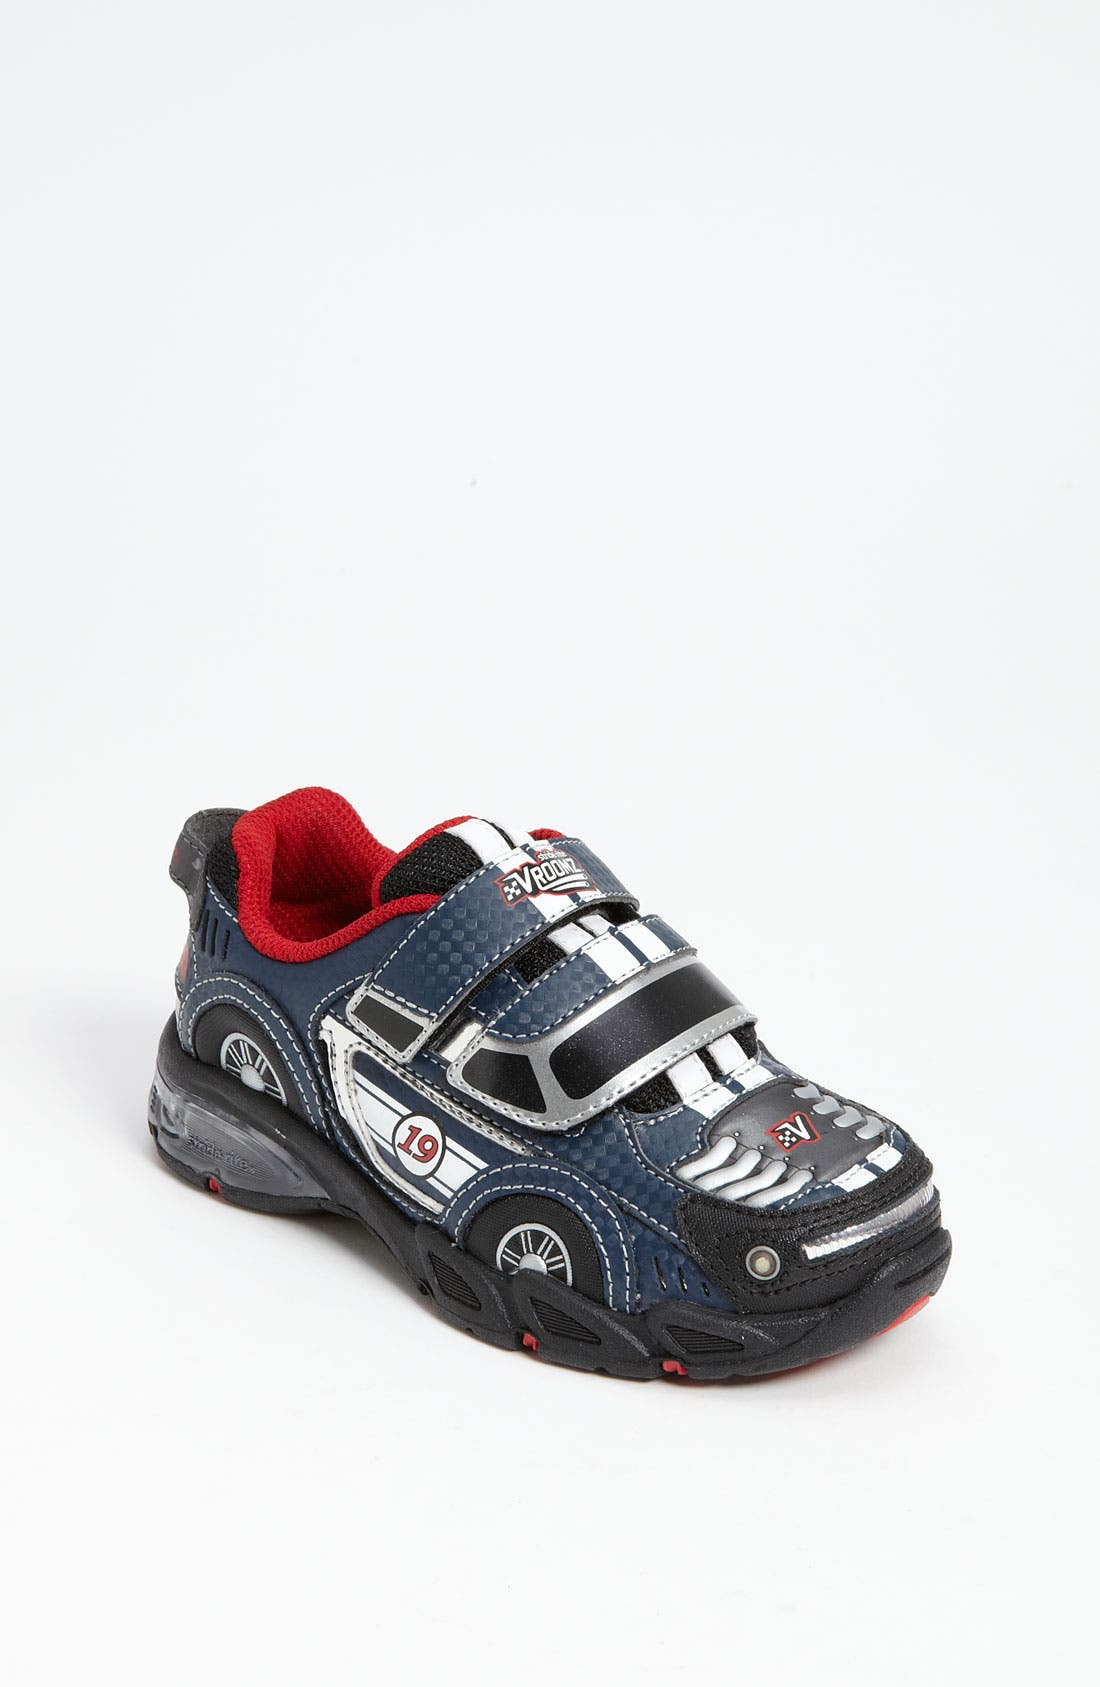 Main Image - Stride Rite 'Vroomz' Sneaker (Walker & Toddler)